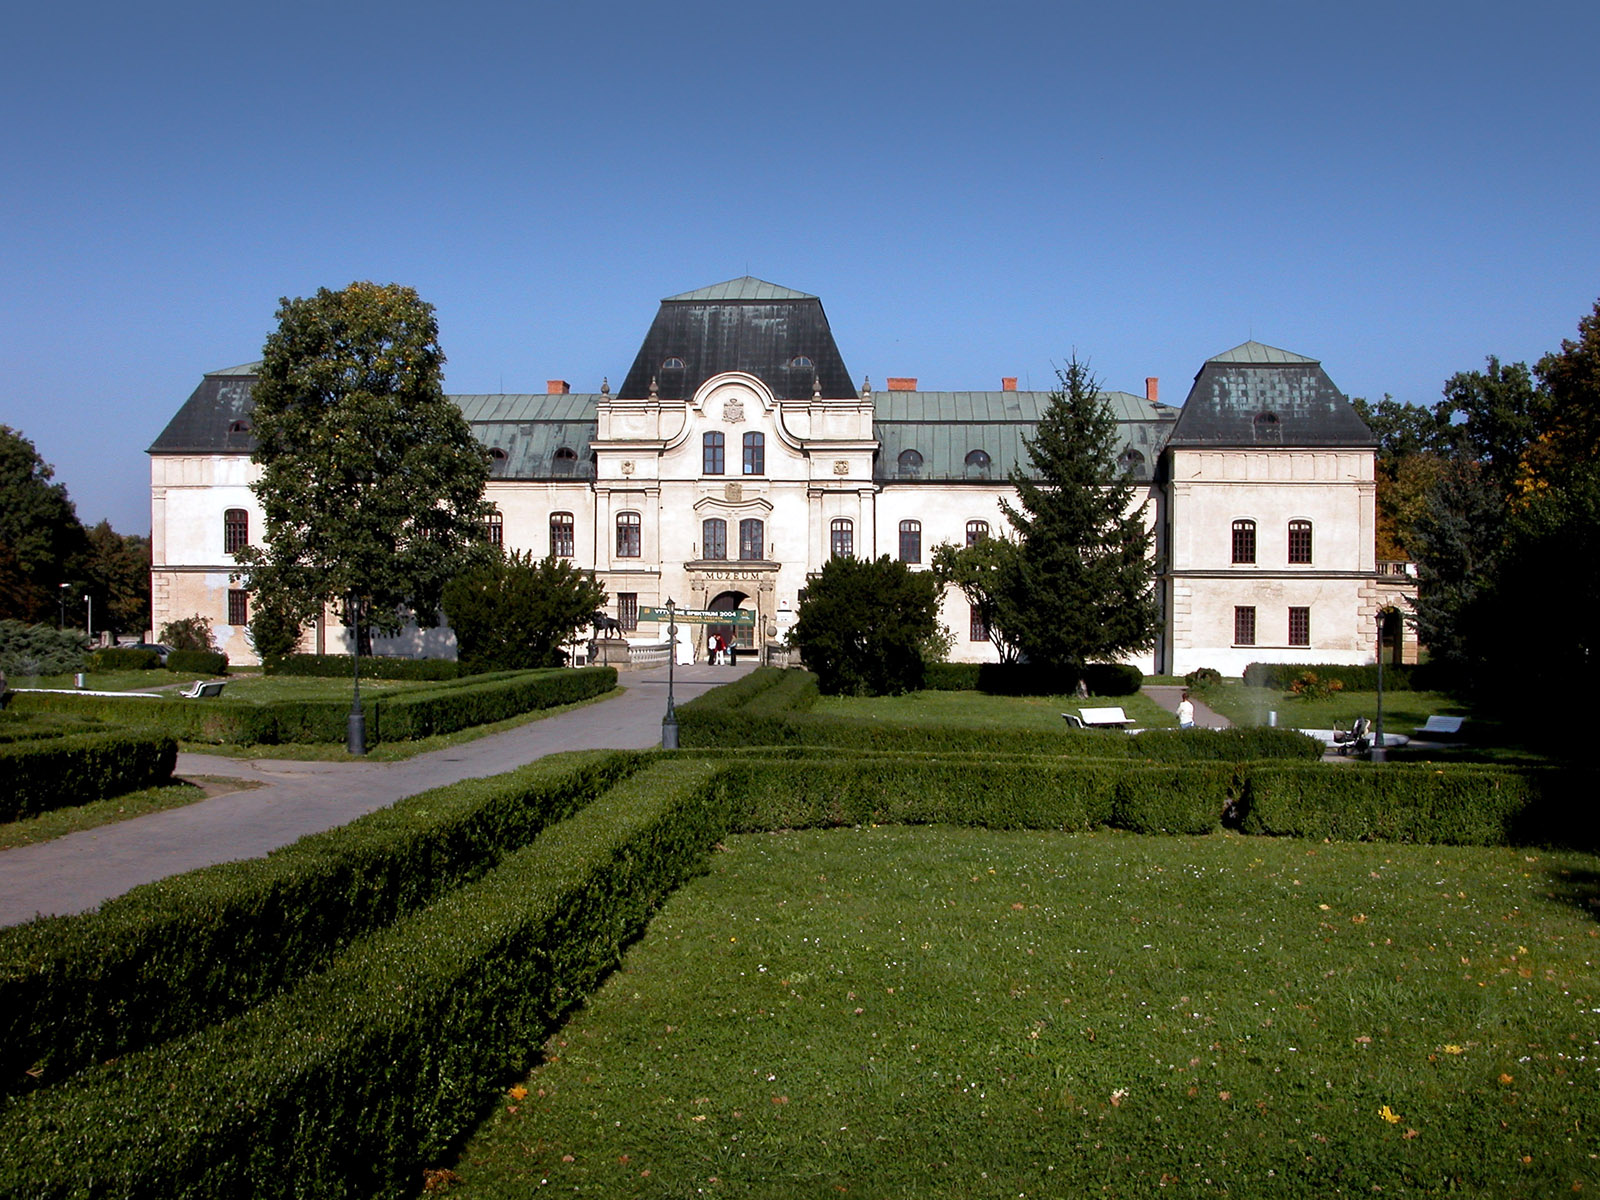 Manor-house in Humenné (Monuments Board of the SR Archive, photo by Peter Fratrič)